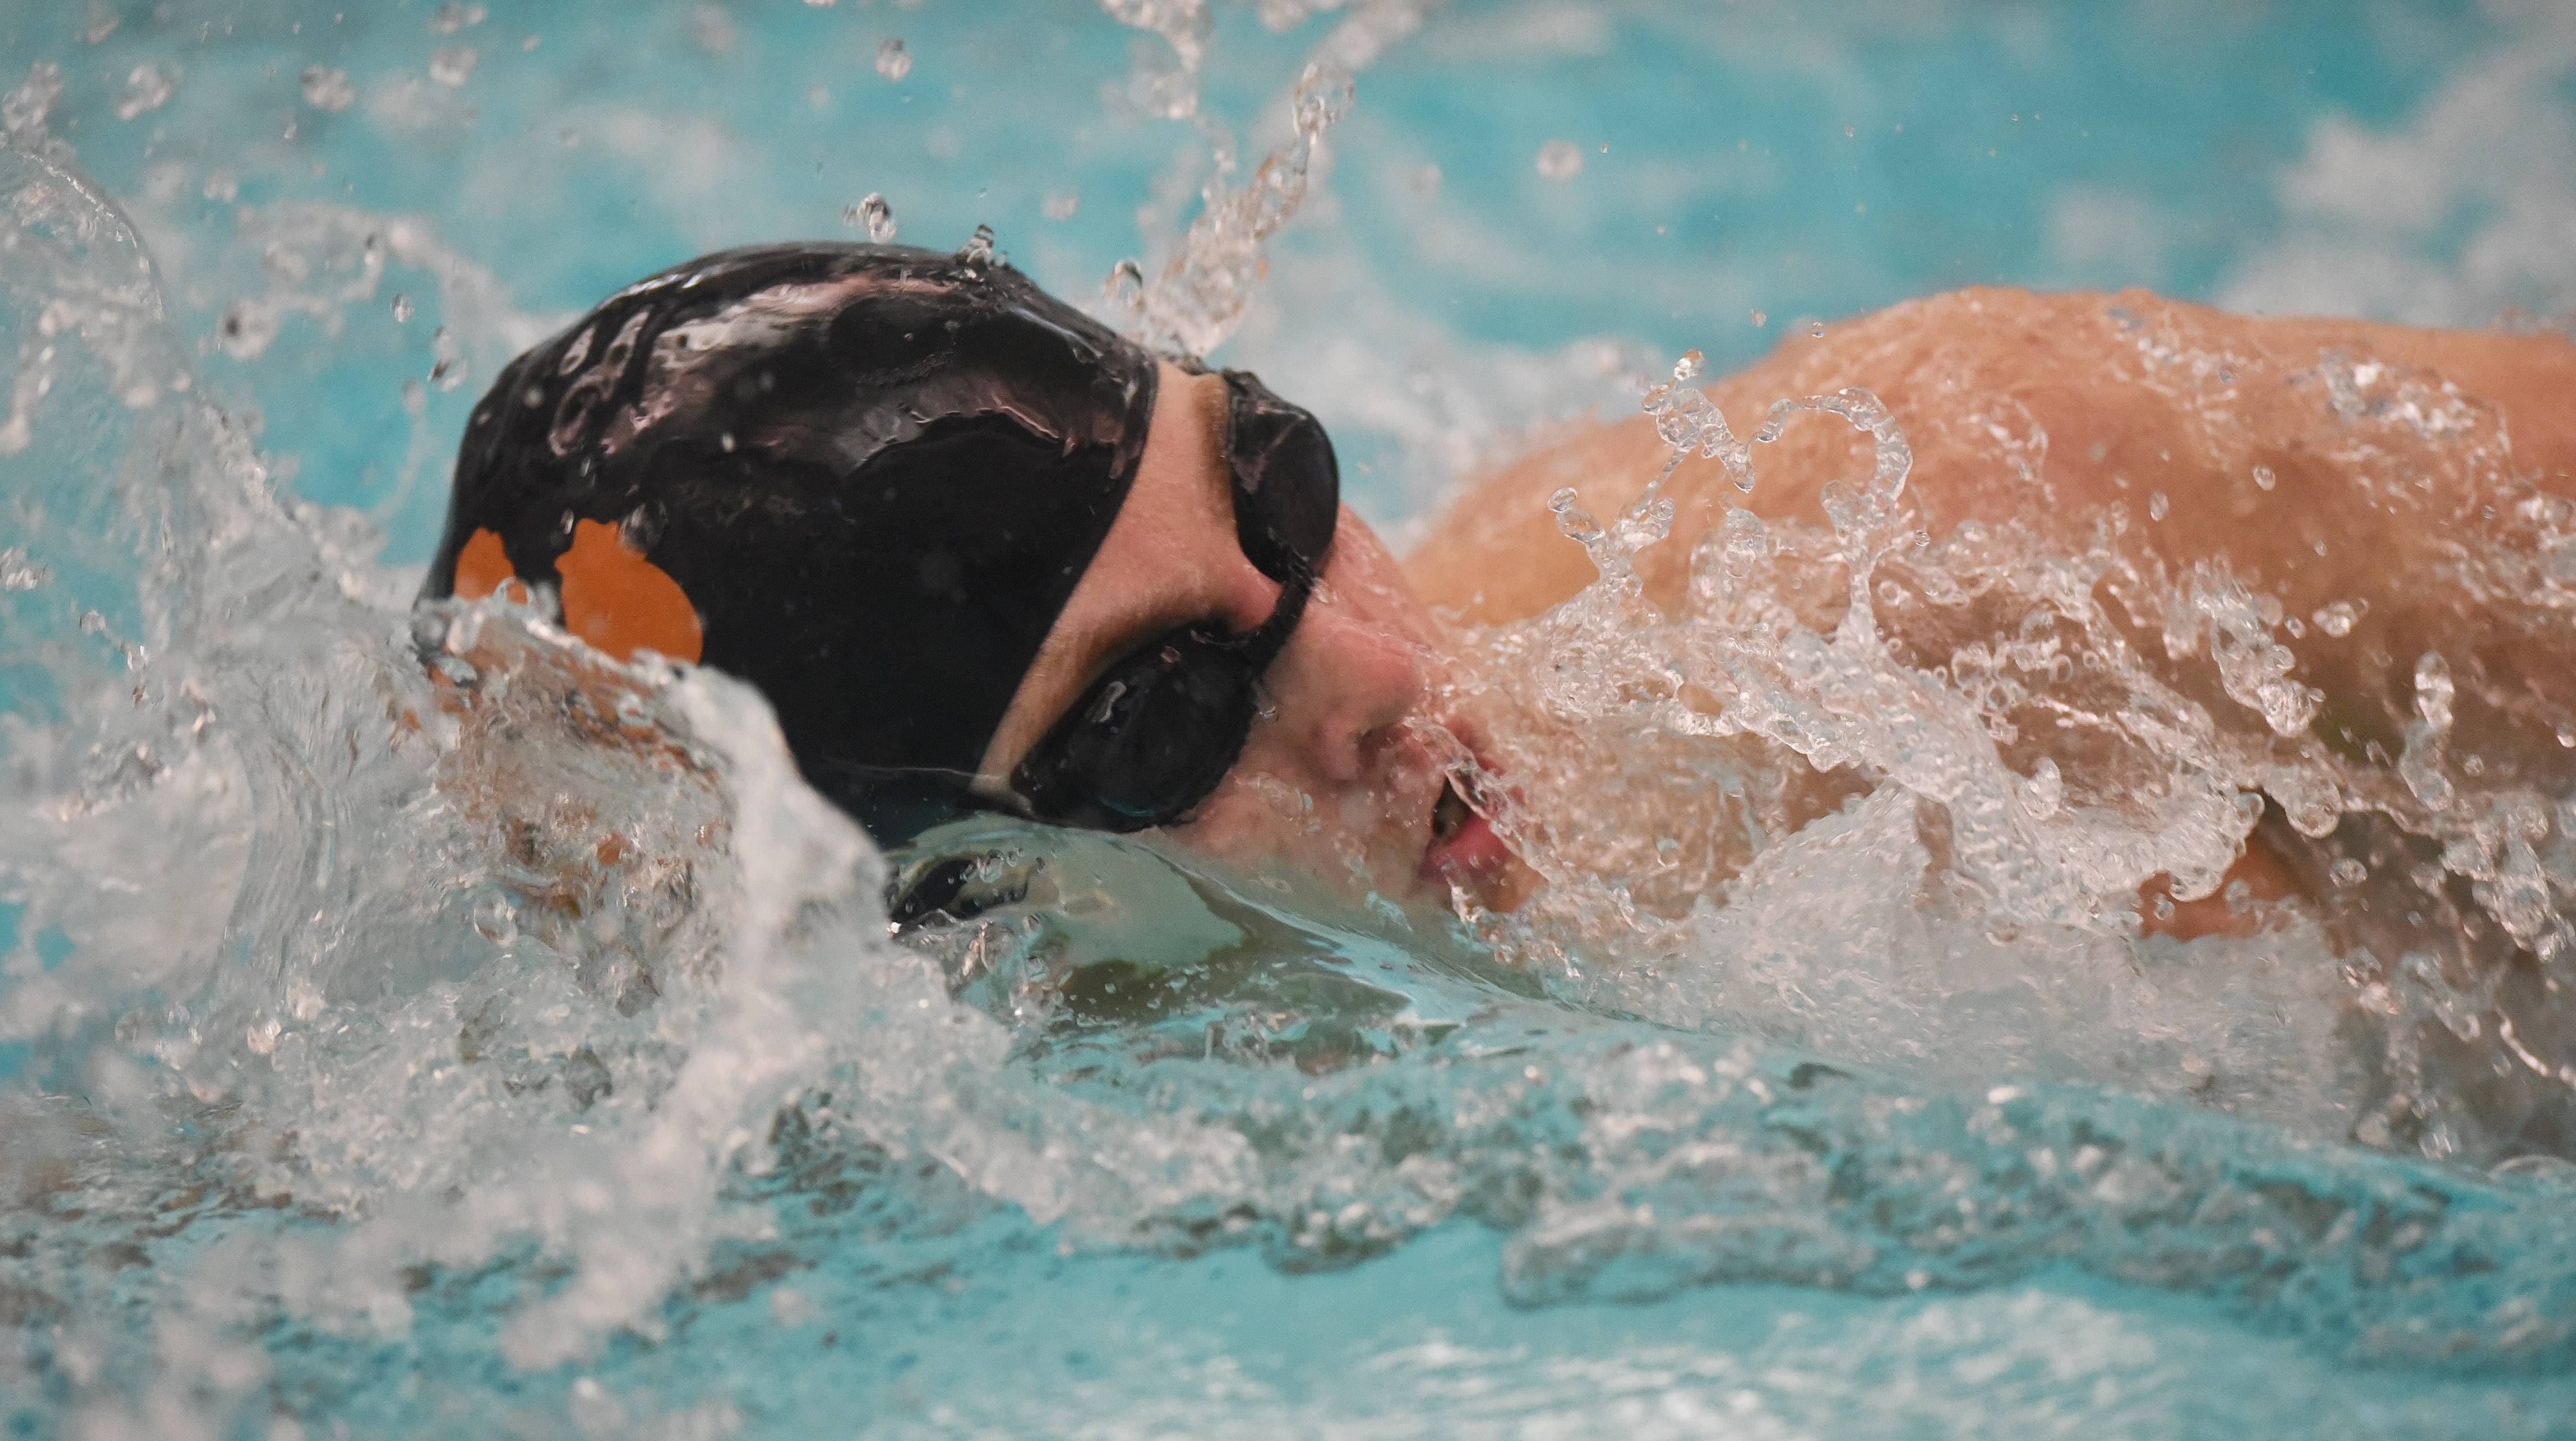 Libertyville's Sean Coughlin swims the 200-yard freestyle during the North Suburban Conference boys swimming meet at Vernon Hills on Saturday.